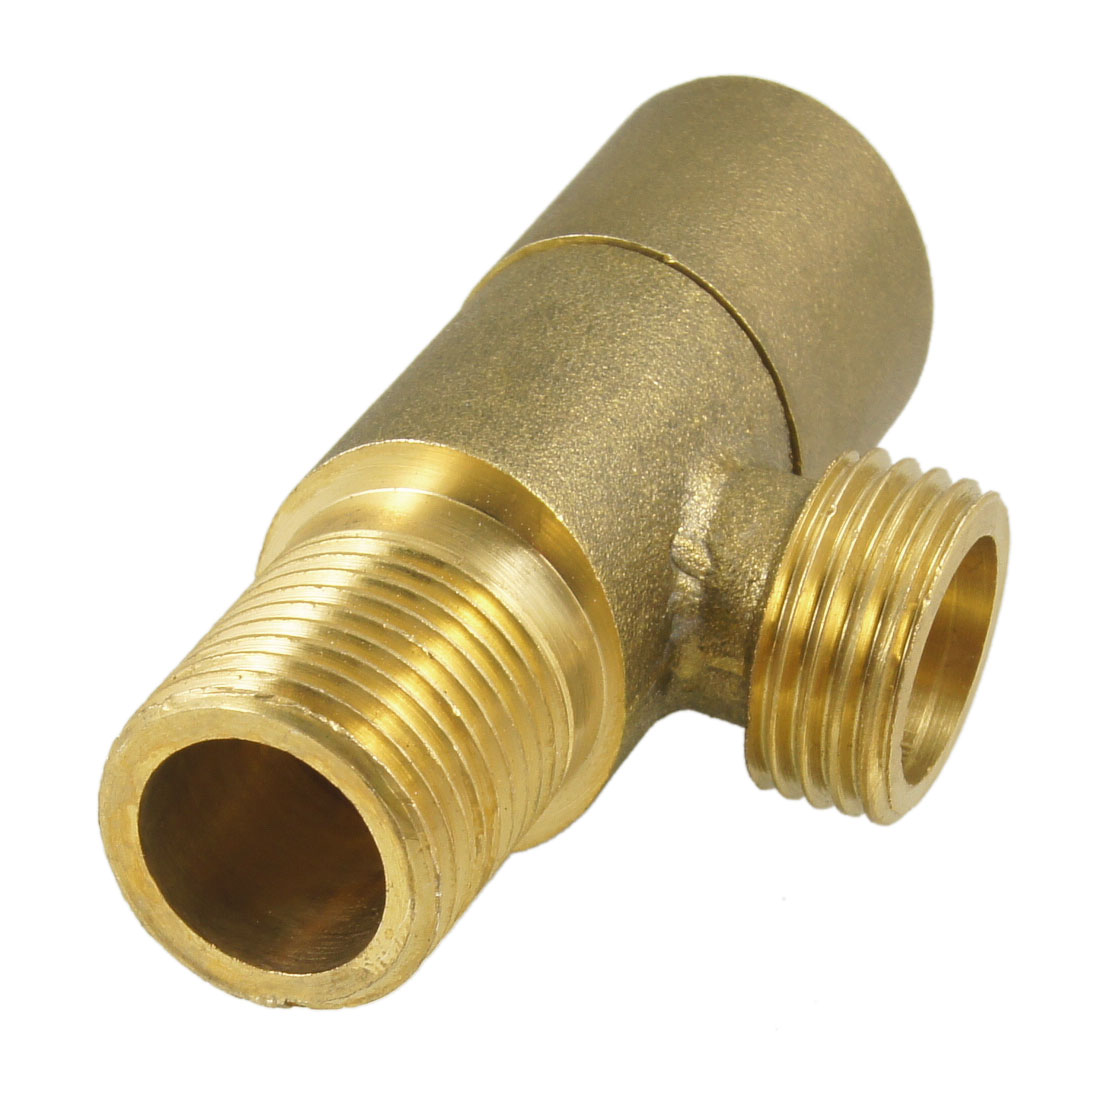 "PT 1/2"" Thread Quarter Turn 2-Way Brass Tone Angle Stop Valve"